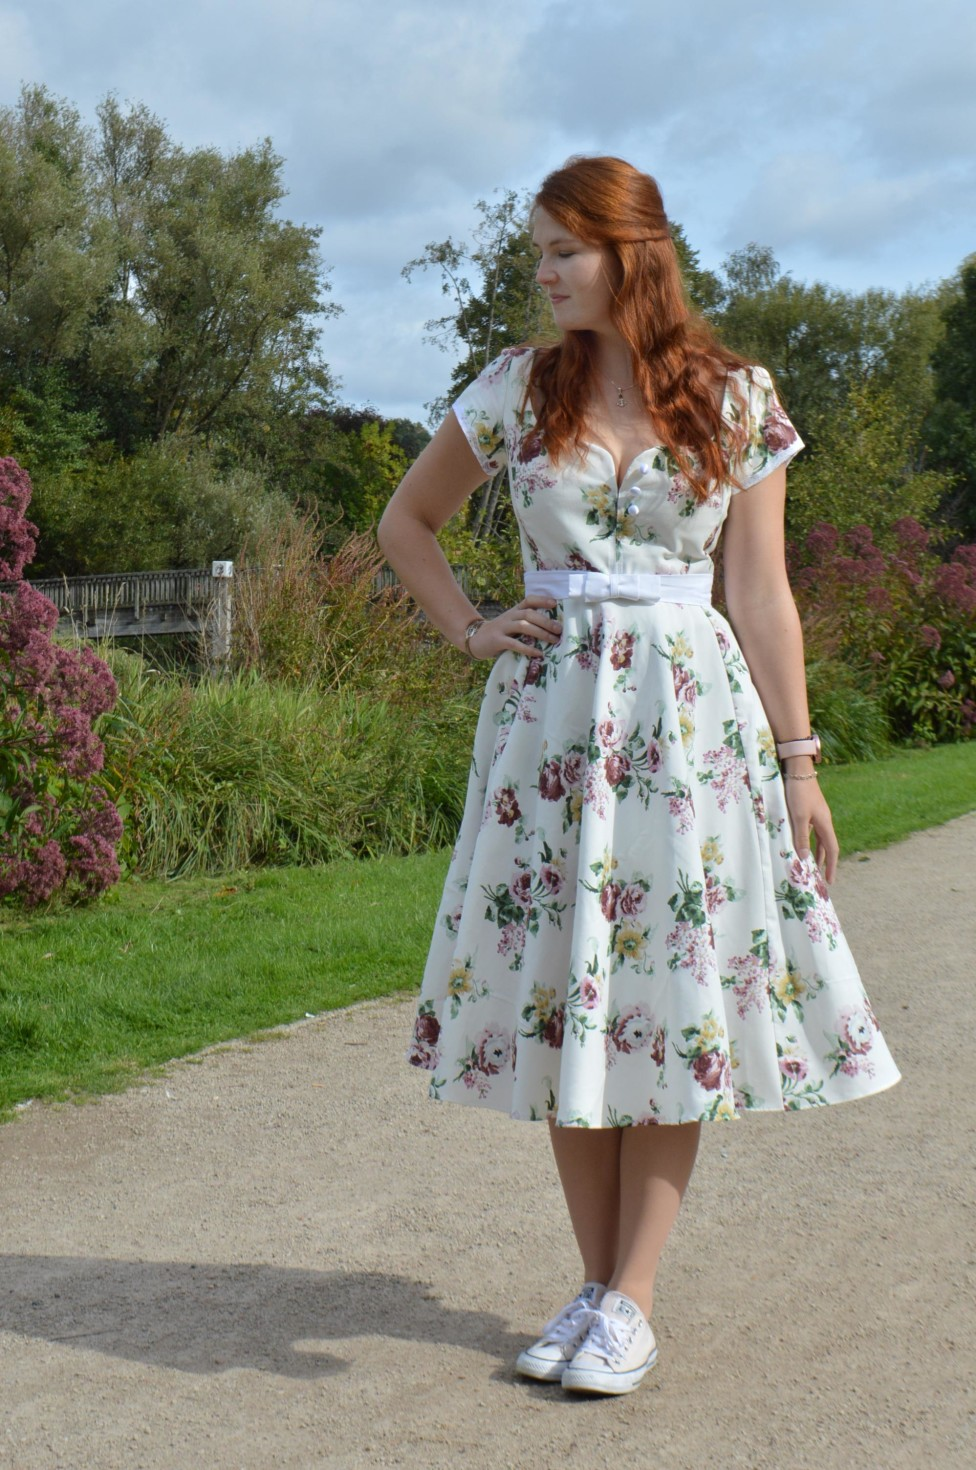 burda style Nutzerkreation InaSophie Dramatic Dresses No 8